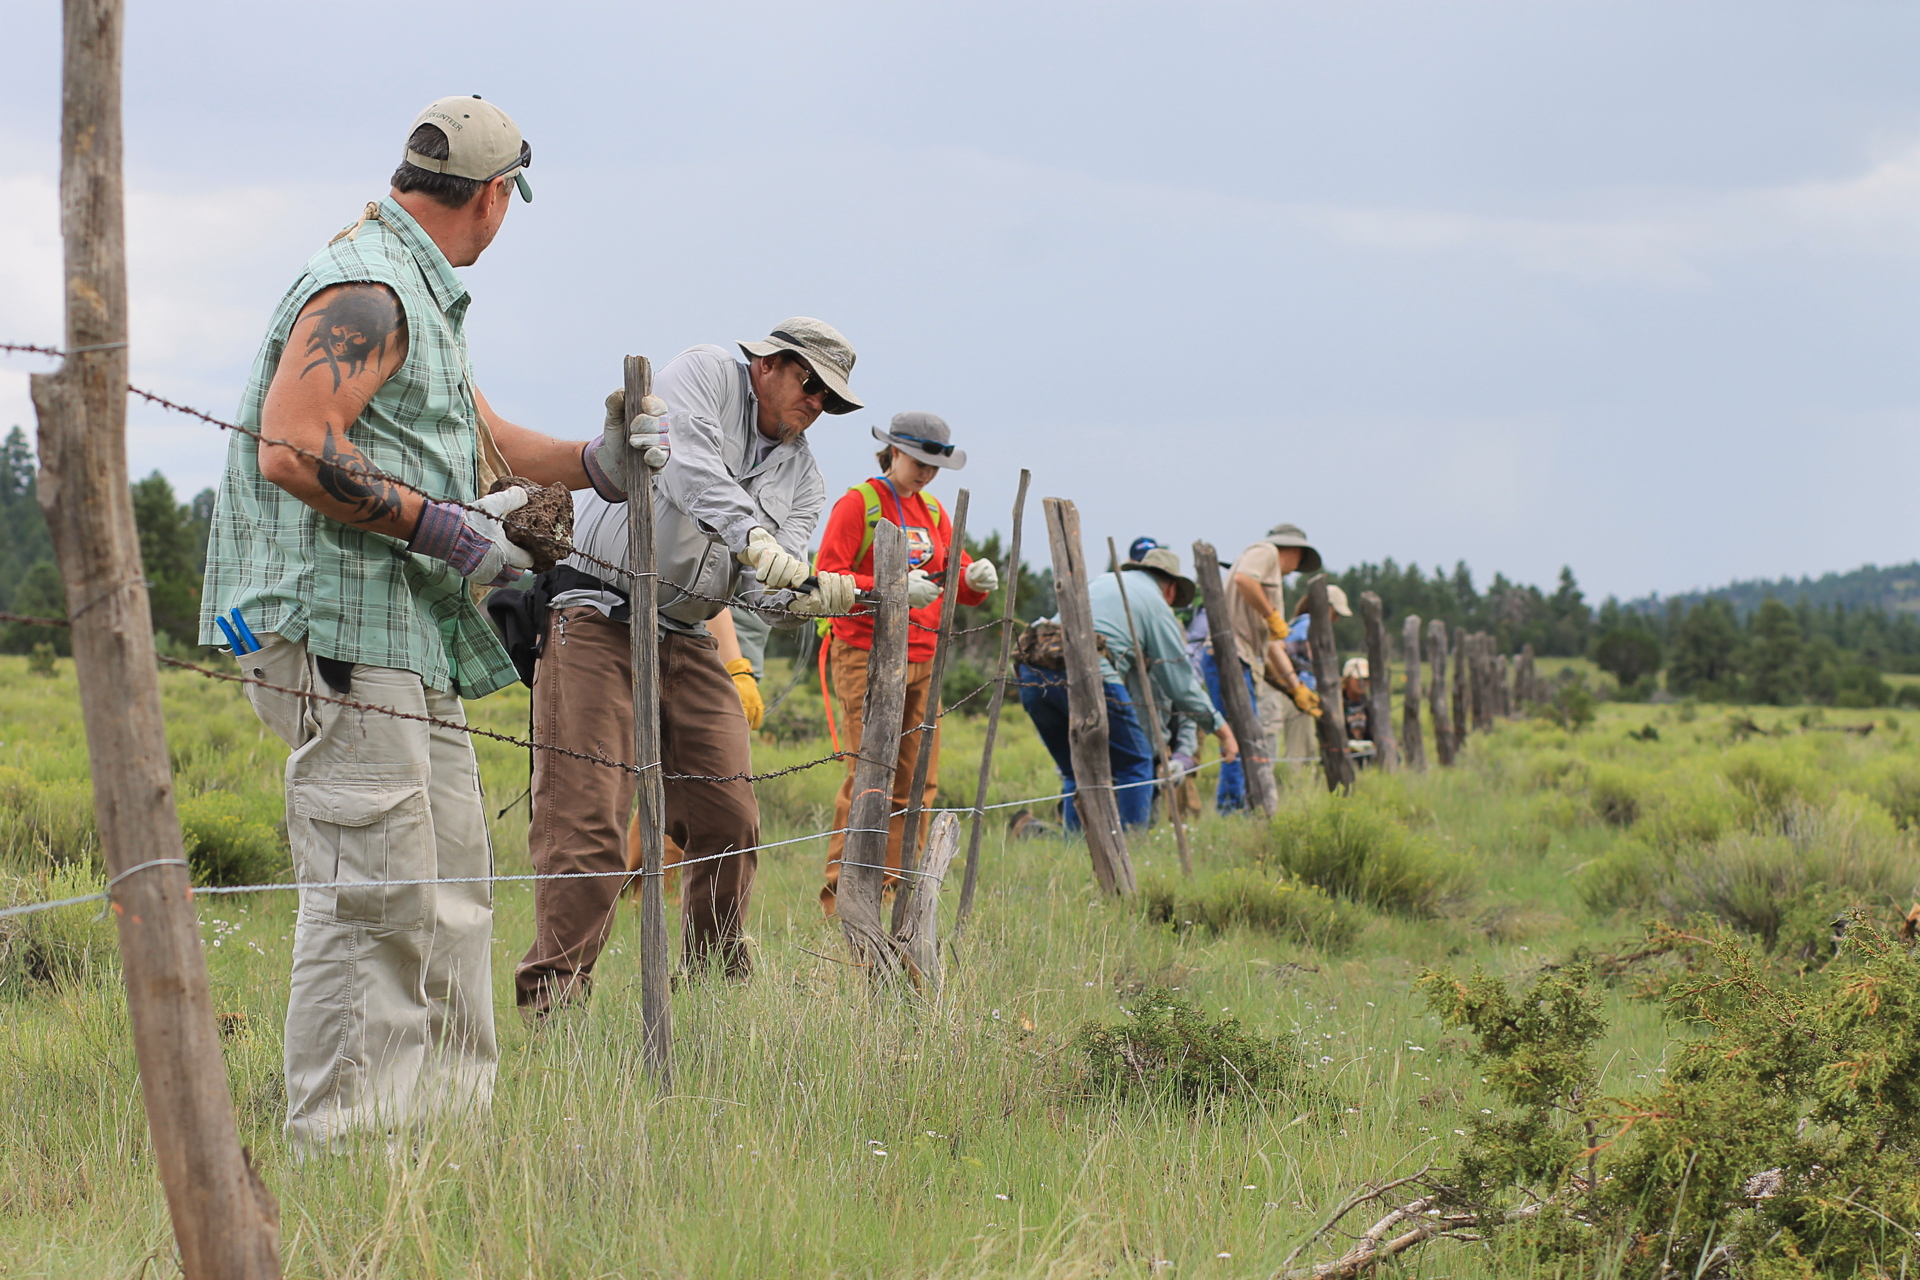 Mending fences: Wildlife managers alter fences for